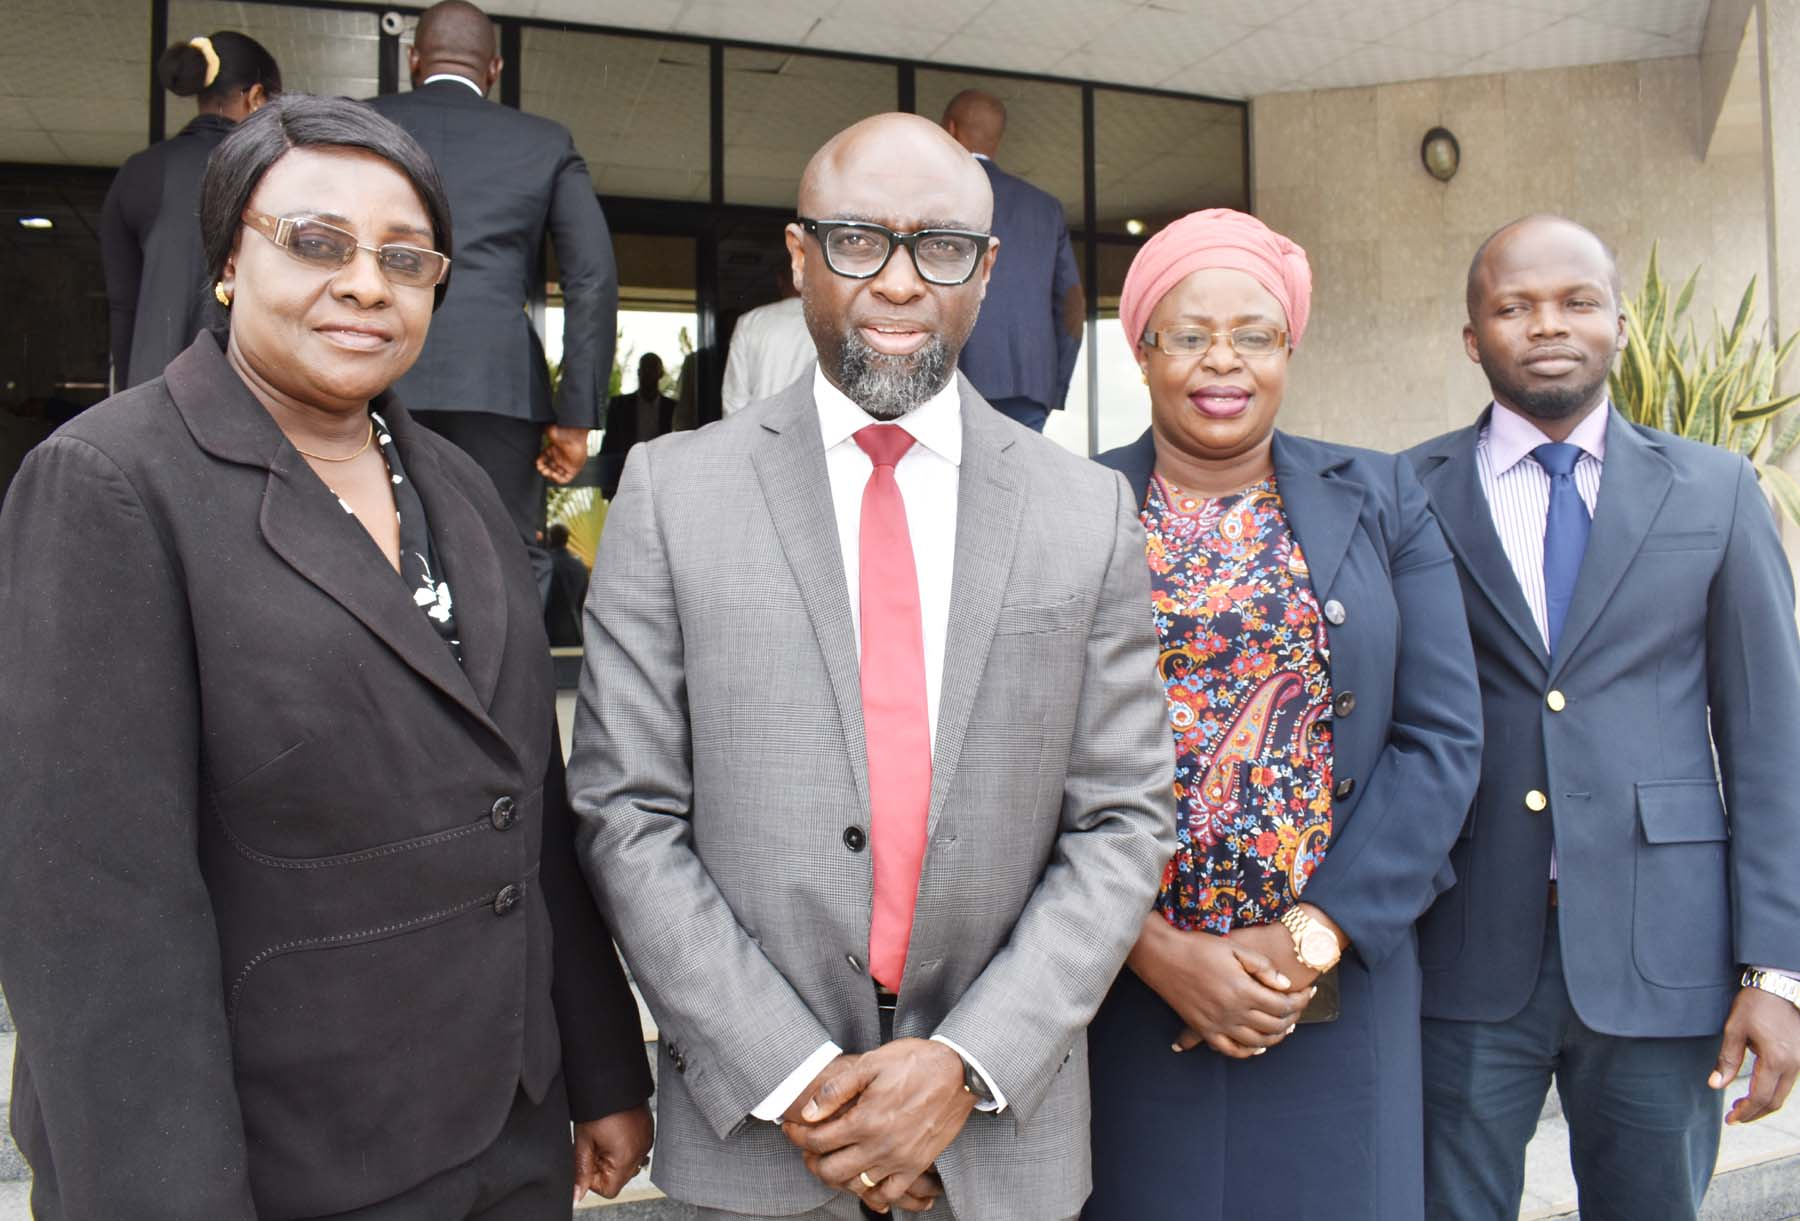 GAMBIA and SEC, 1 L-R,   Deputy Permanent Secretary, Ministry of Finance and Economic Affairs The Gambia Mrs Juldeh Ceesay, Principal Manager, International Relations Division, Securities and Exchange Commission, Mr Tony Iloka, Senior Bank Examiner, Central Bank of The Gambia Mrs Mariama Conateh-Gaye and Principal Financial Analyst, Ministry of Finance and Economic AffairsThe Gambia Mr Sulayman Cham during a Meeting between SEC and Ministry of Finance and Economic Affairs The Gambia, in Abuja, Tuesday